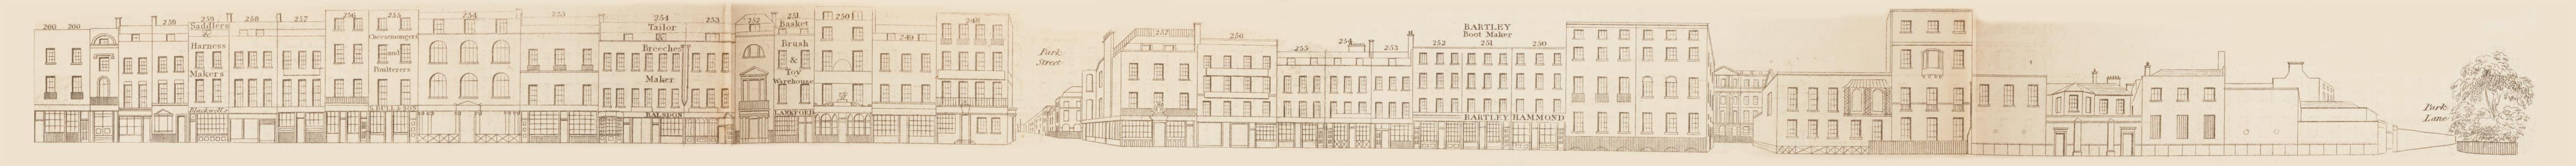 map - Tallis's London street views : No. 72. Oxford Street, division 6 (south)